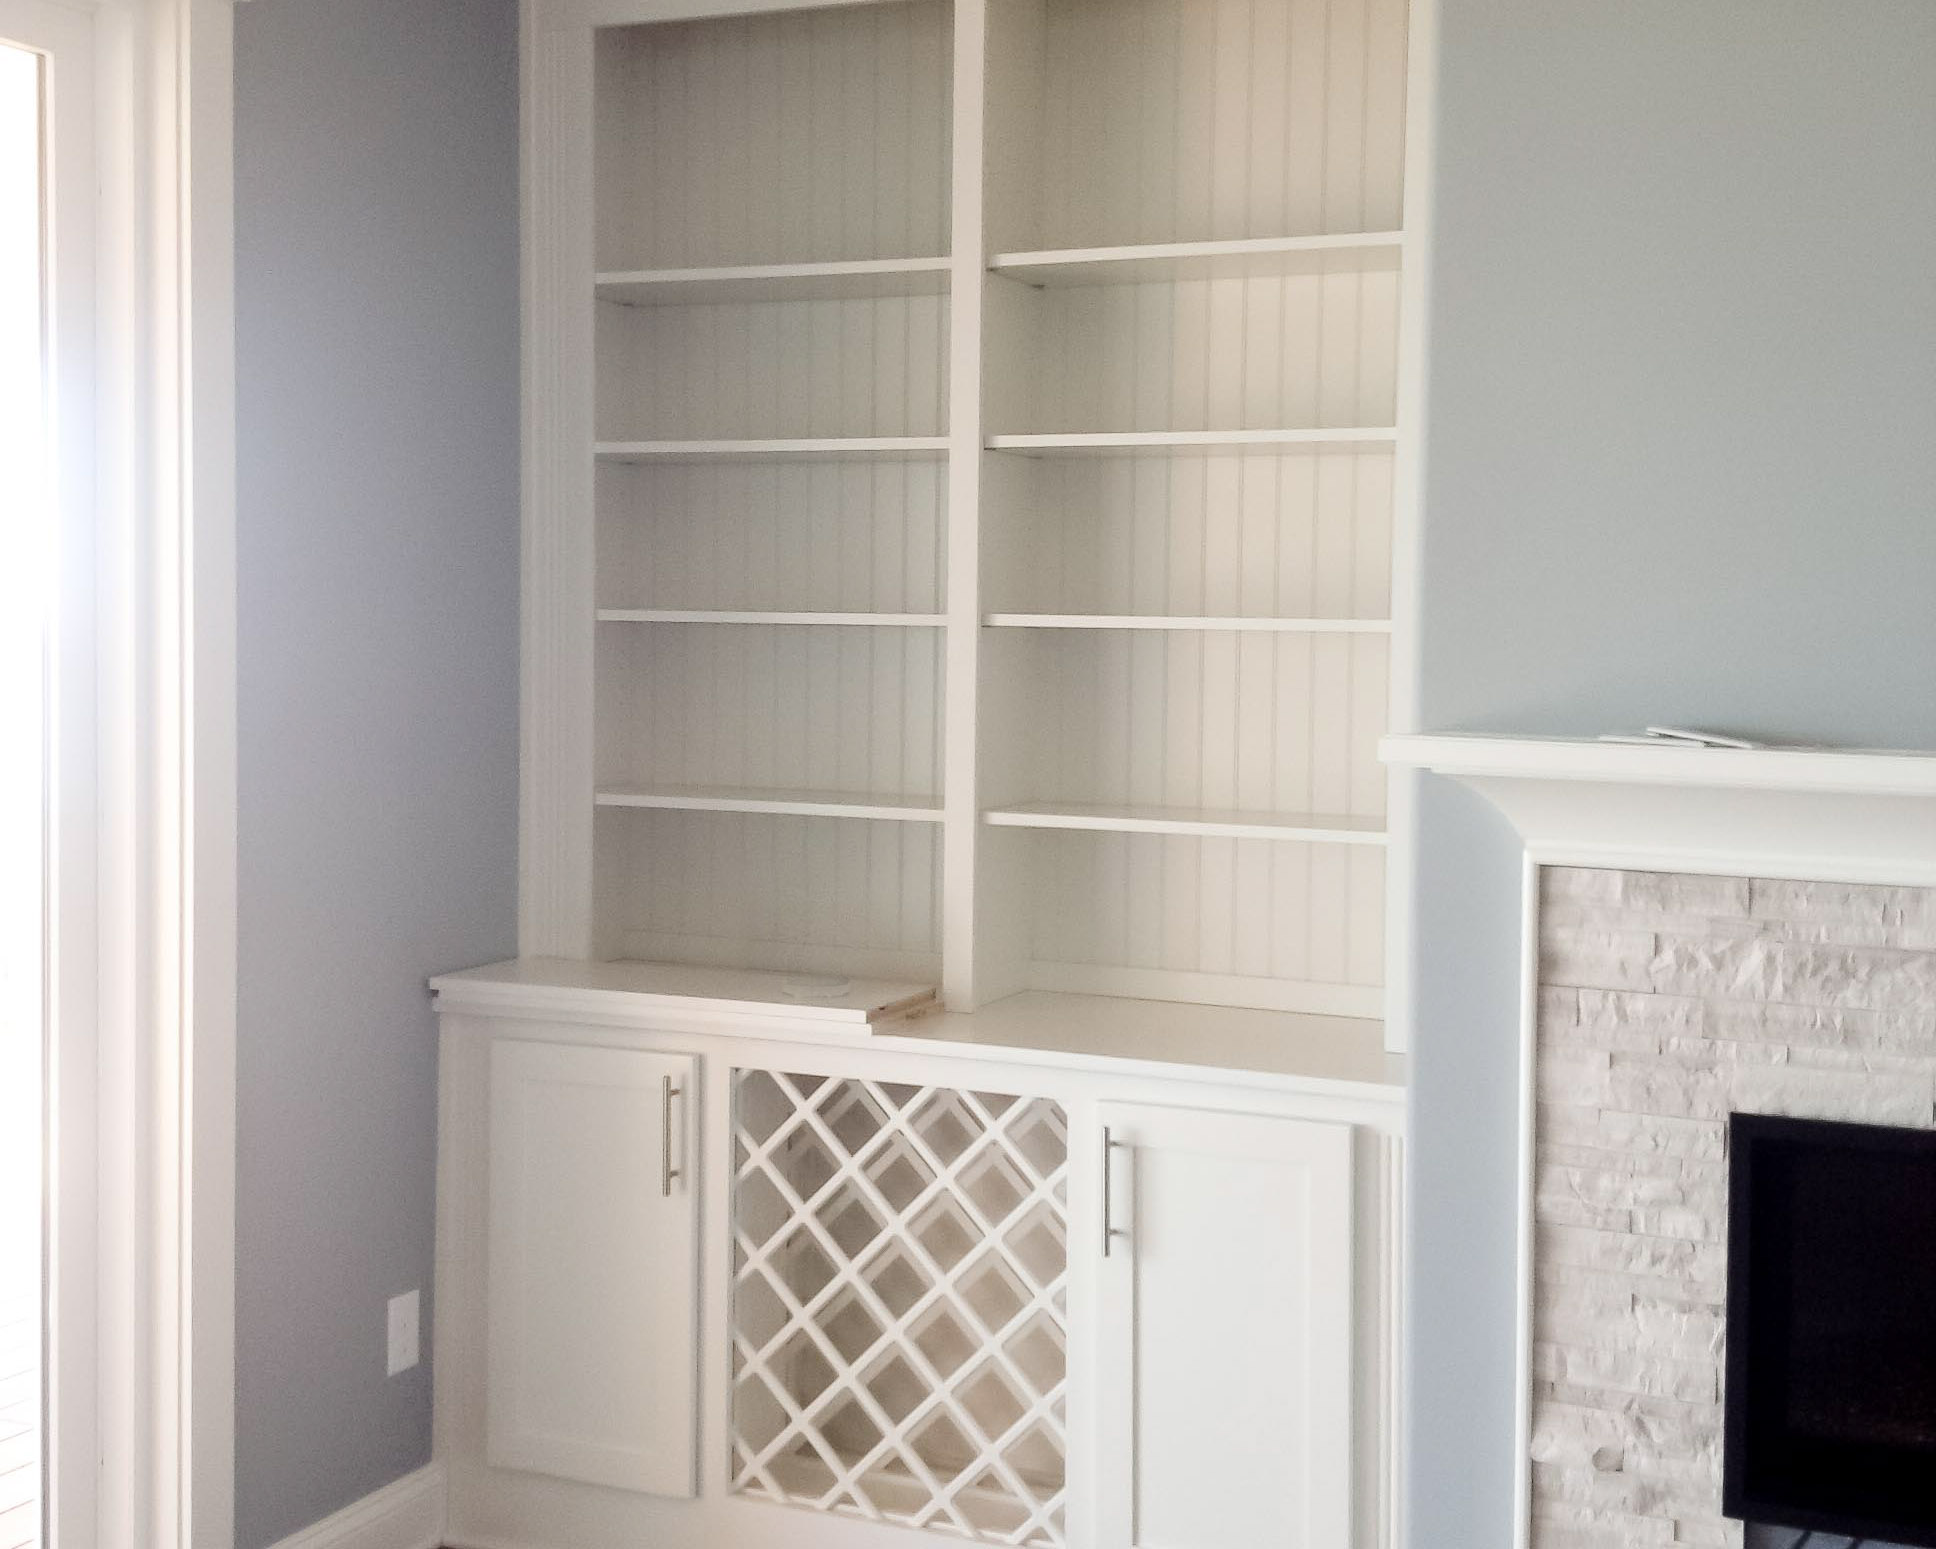 built in cabinets in new beach home